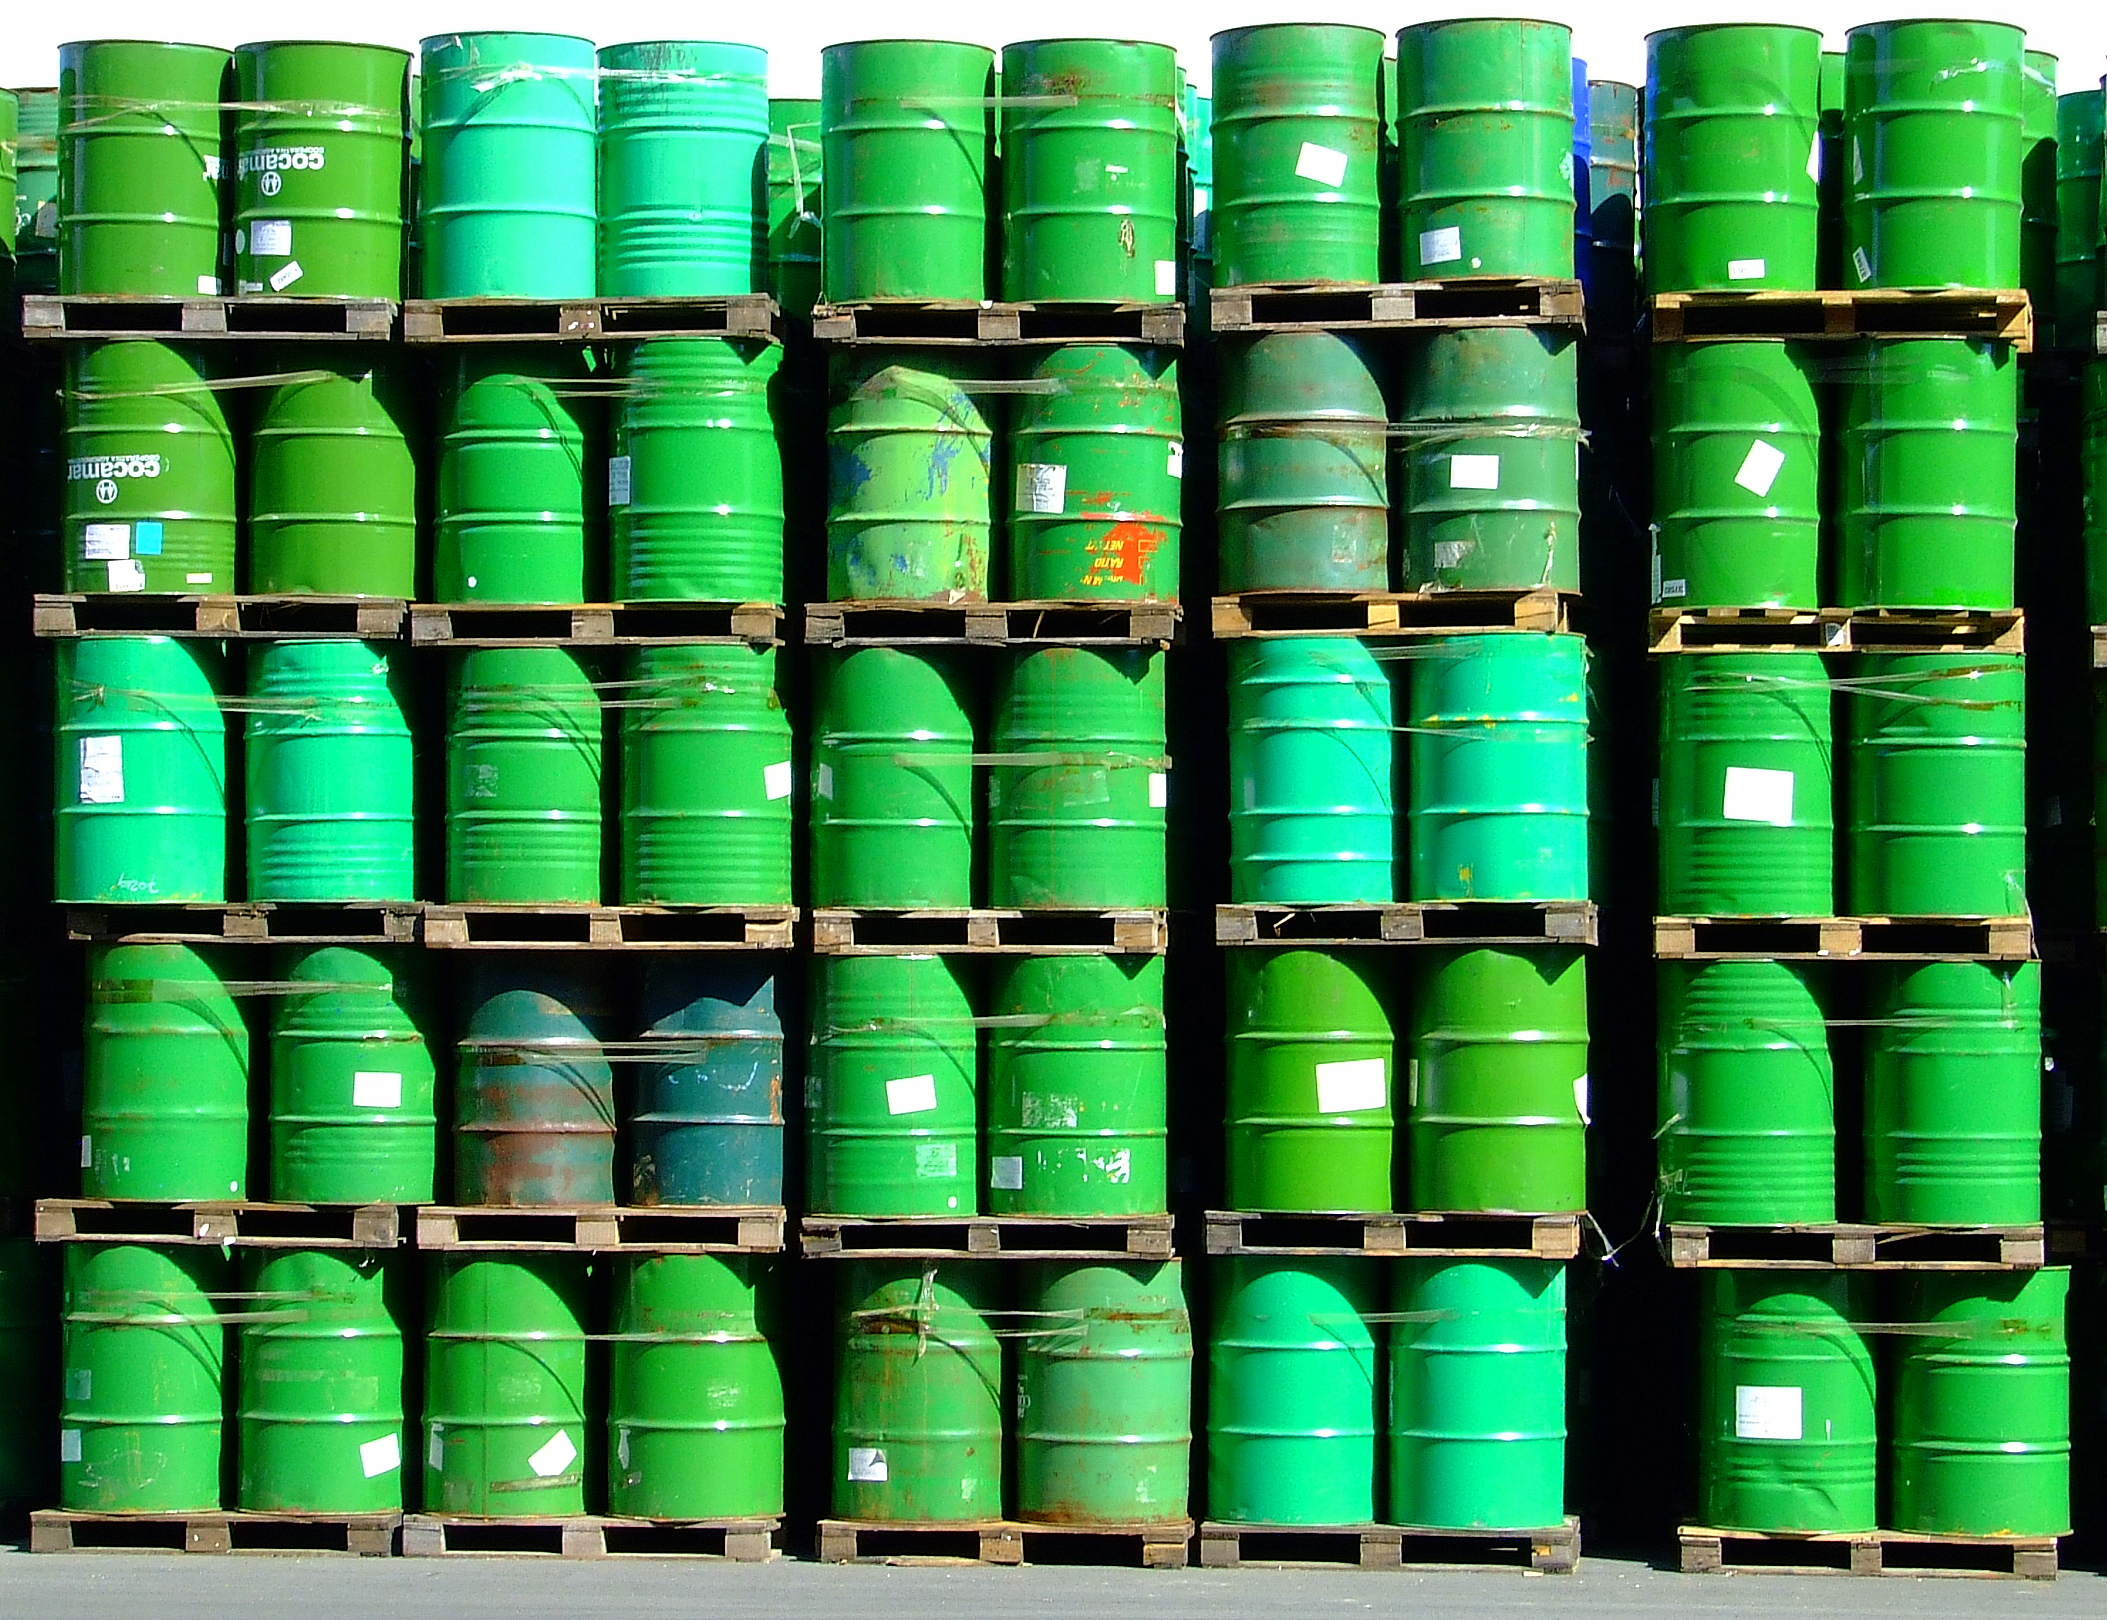 green oil, by Sergio Russo / flickr.com / CC BY-SA 2.0